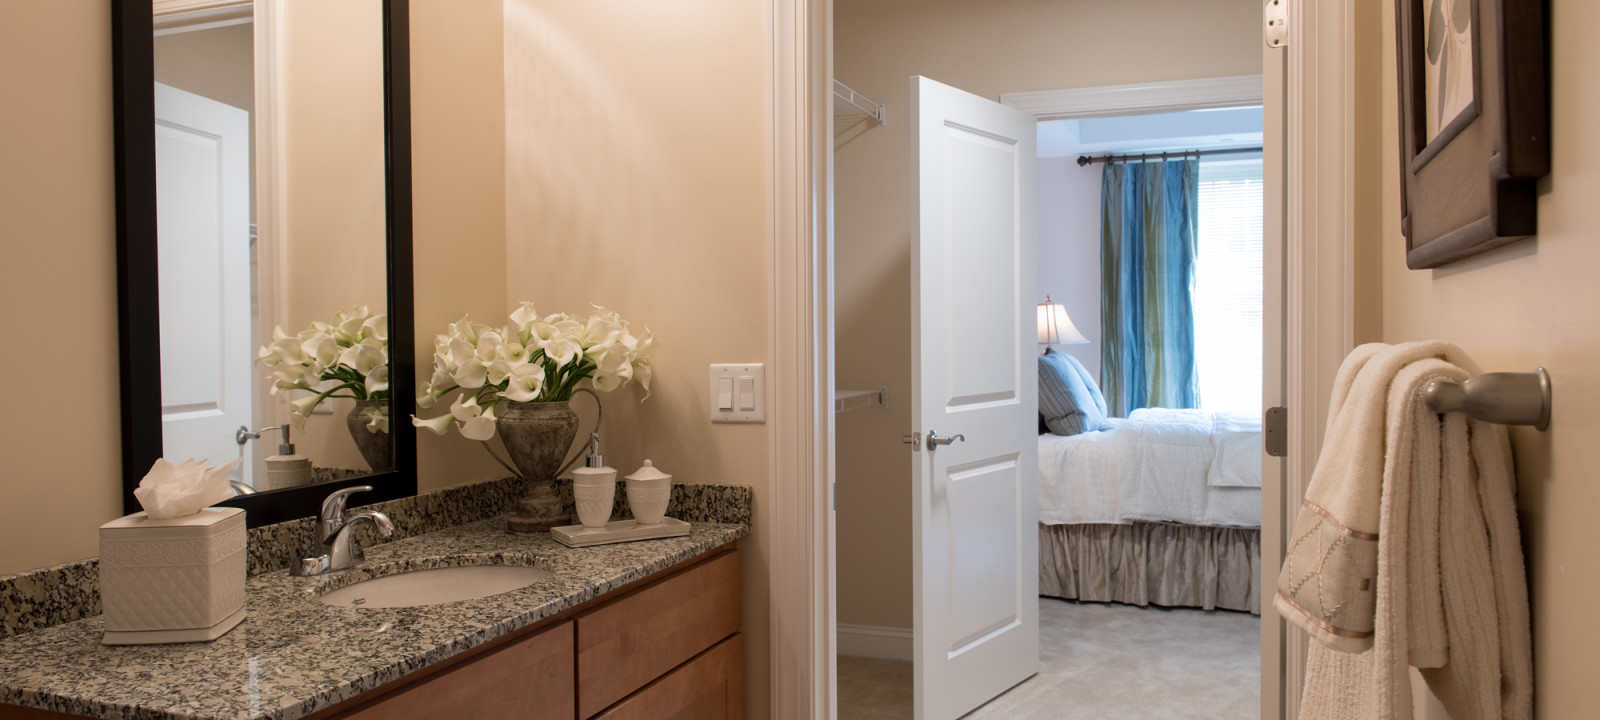 bathroom suite at Meridian at Eagleview apartments in Exton PA